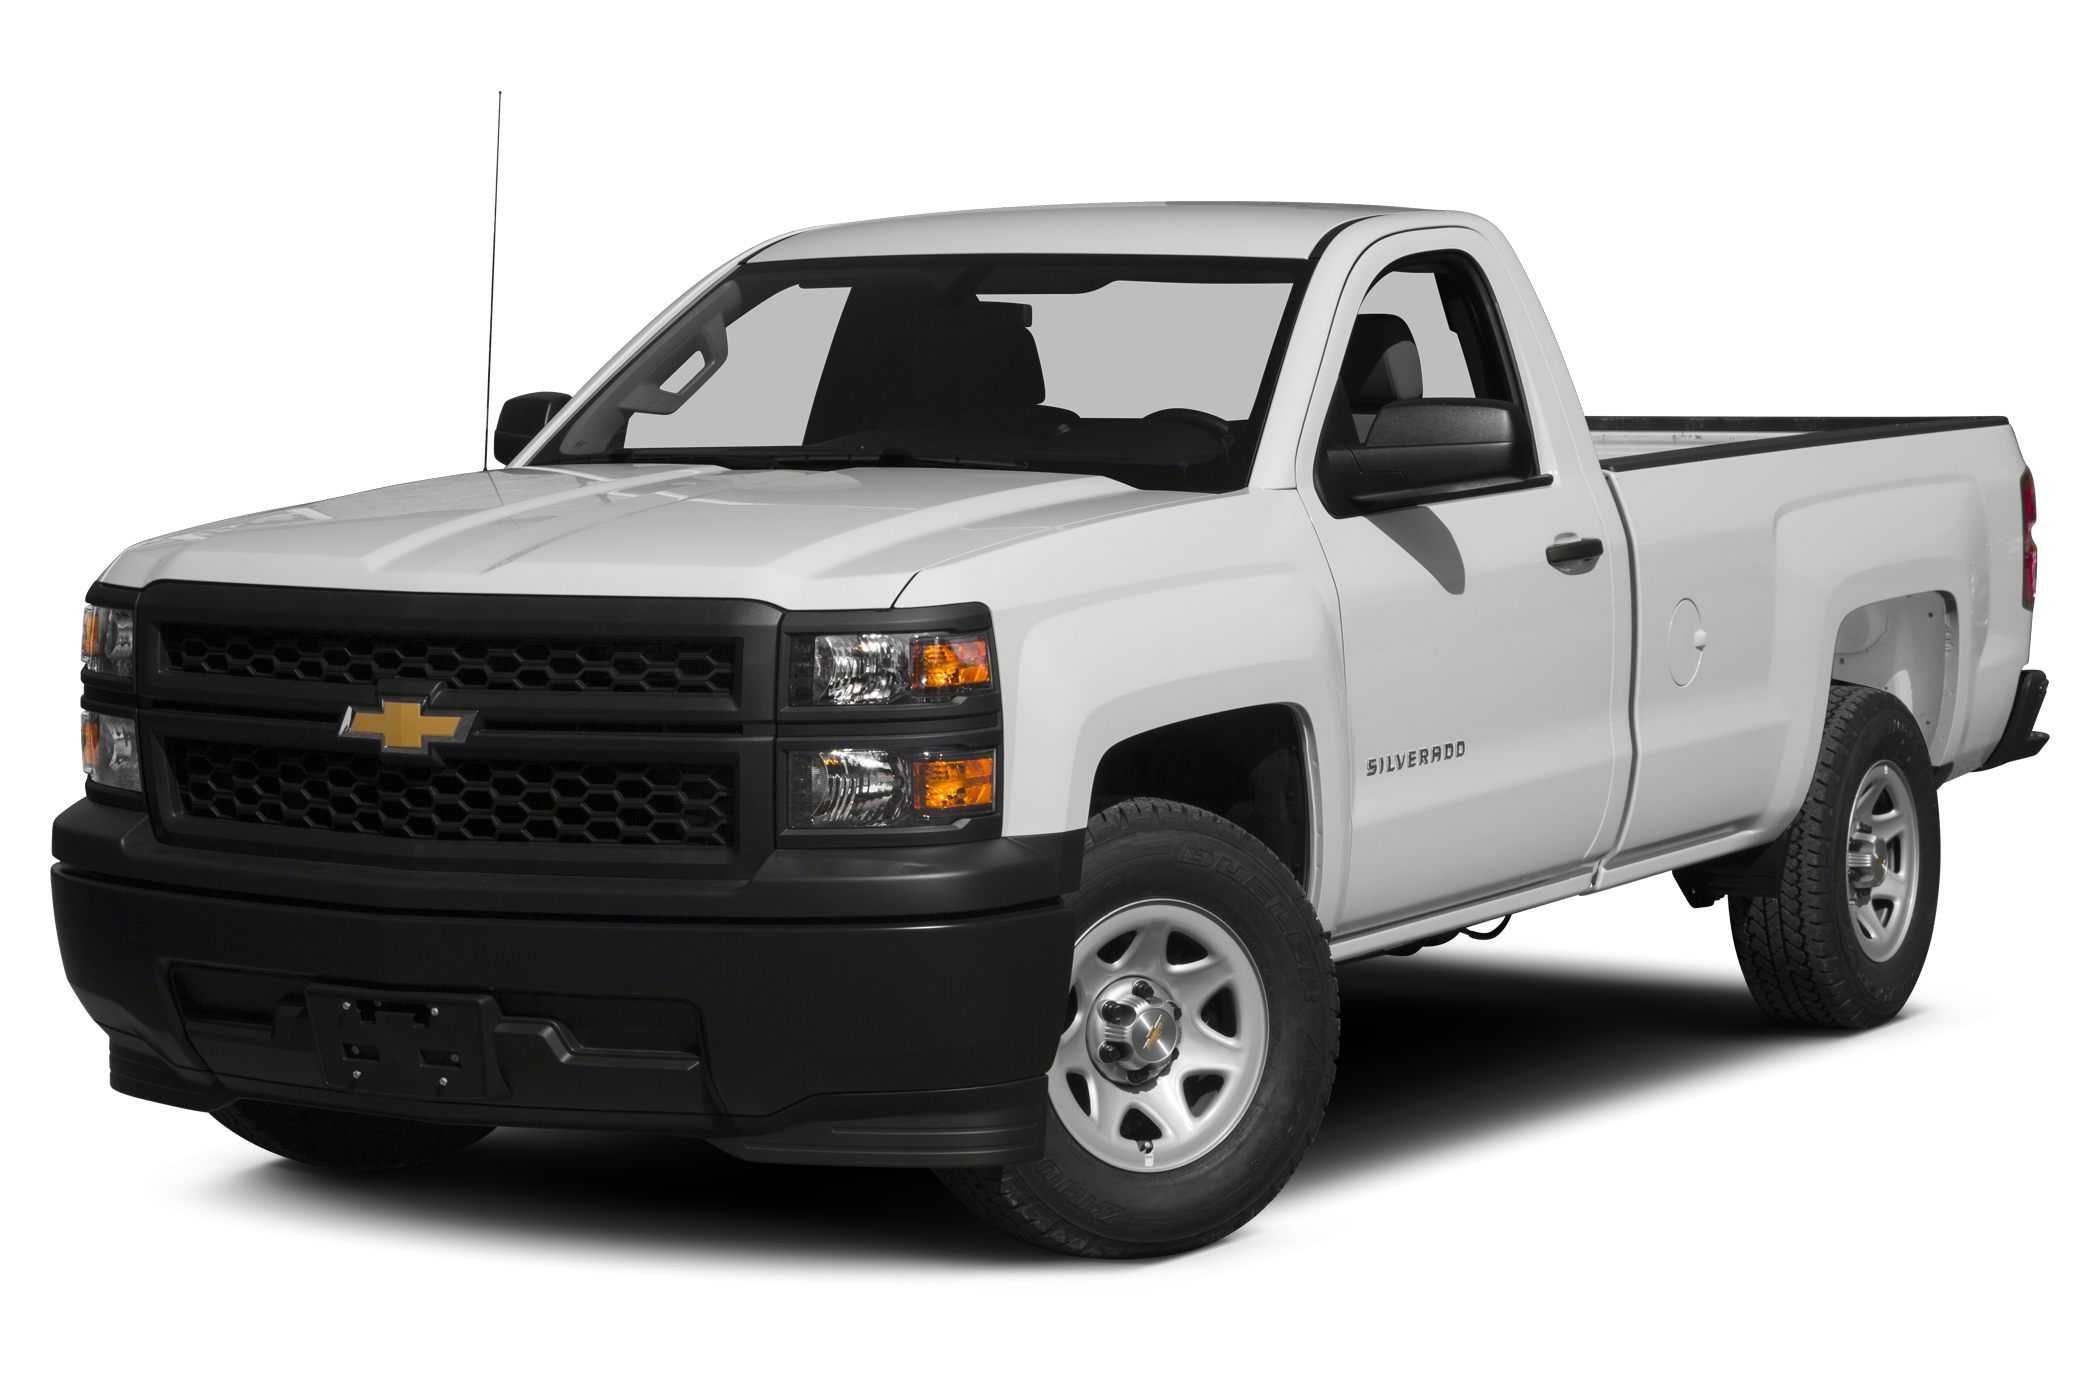 2015 Chevrolet Silverado 1500 1LT Crew Cab Pickup for sale in Tahlequah for $42,095 with 8 miles